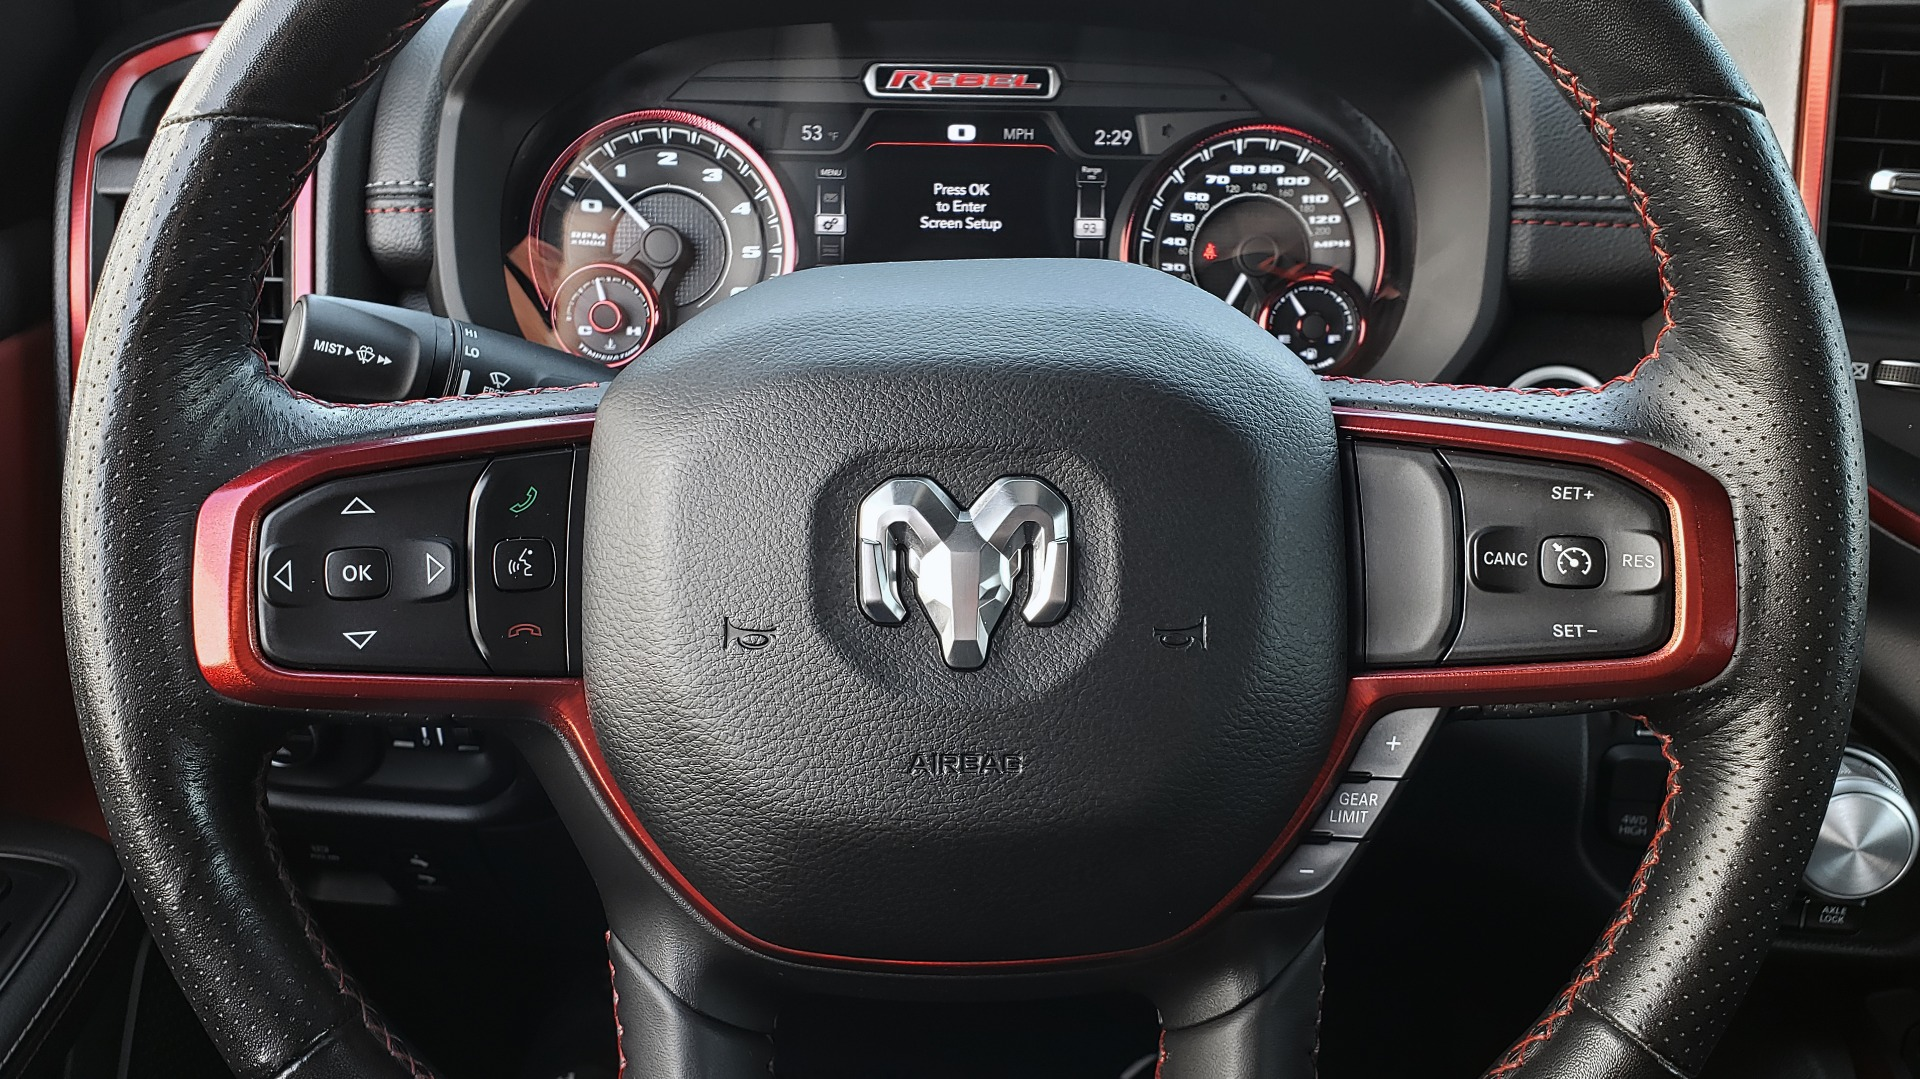 Used 2019 Ram 1500 REBEL CREWCAB 4X4 / 5.7L V8 HEMI / 8-SPD AUTO / REARVIEW for sale Sold at Formula Imports in Charlotte NC 28227 40